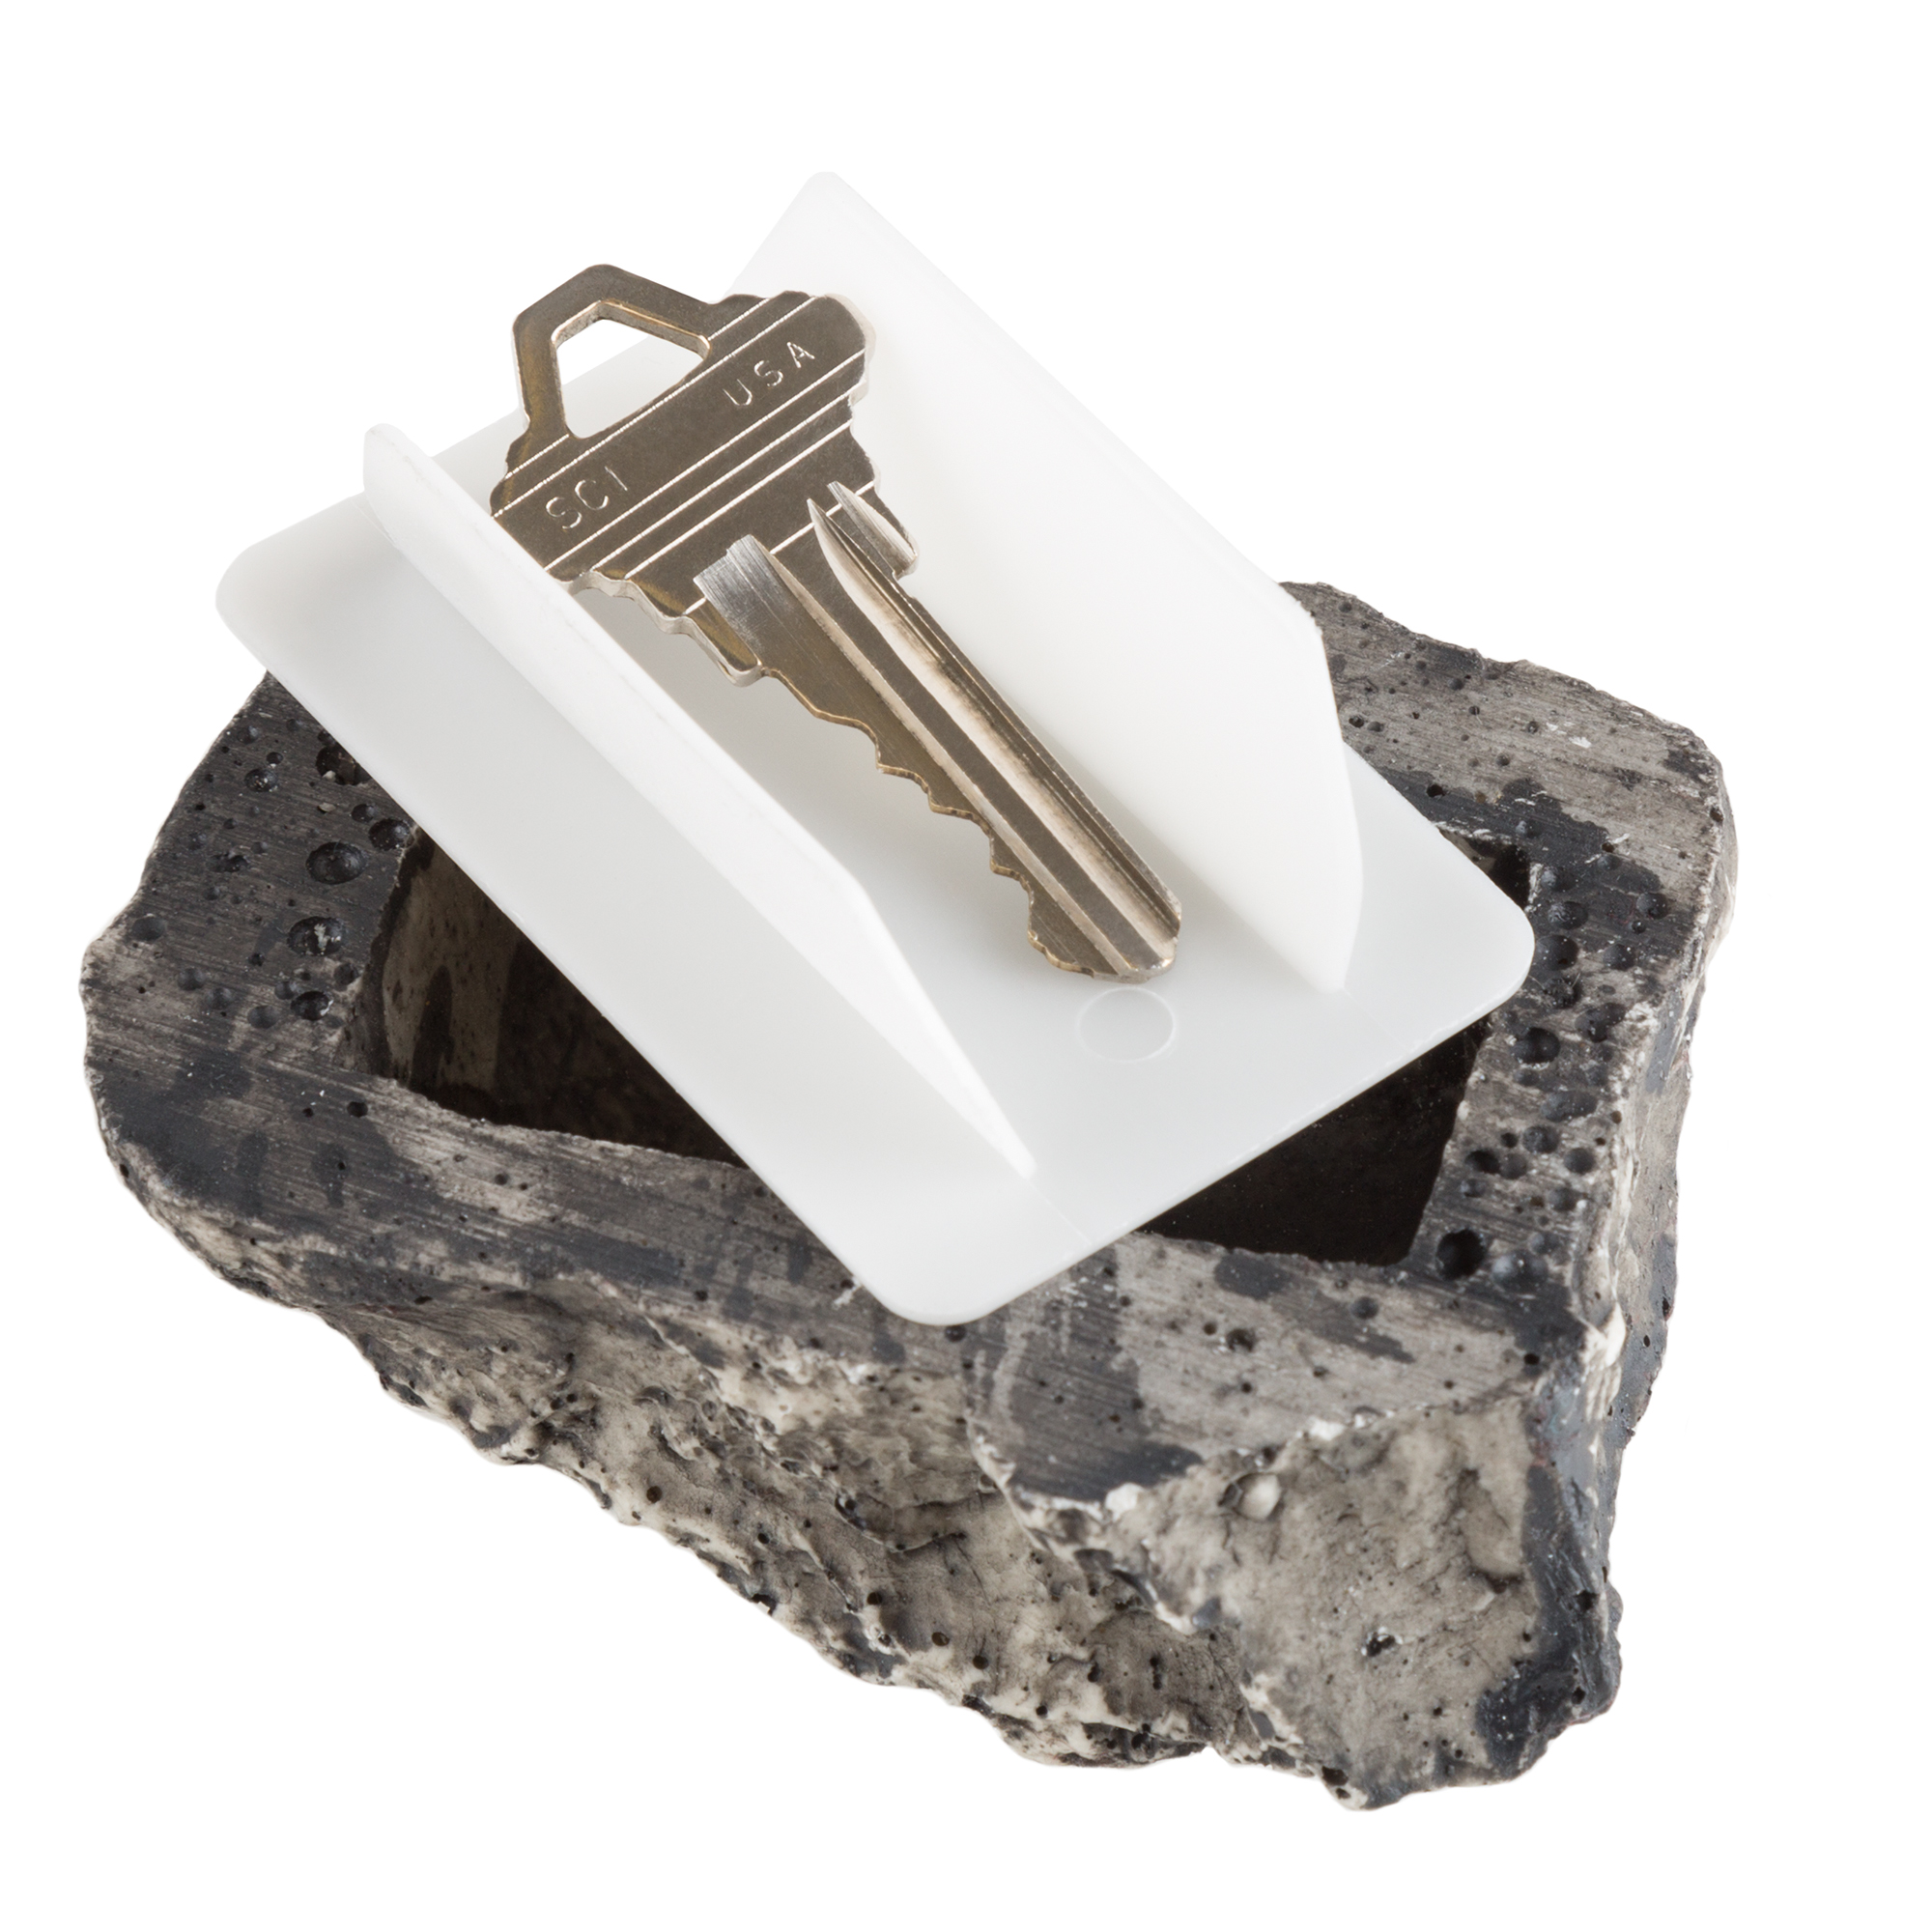 As Seen on TV Hide-A-Key Realistic Rock Outdoor Key Holder, Safety Security Key Holder